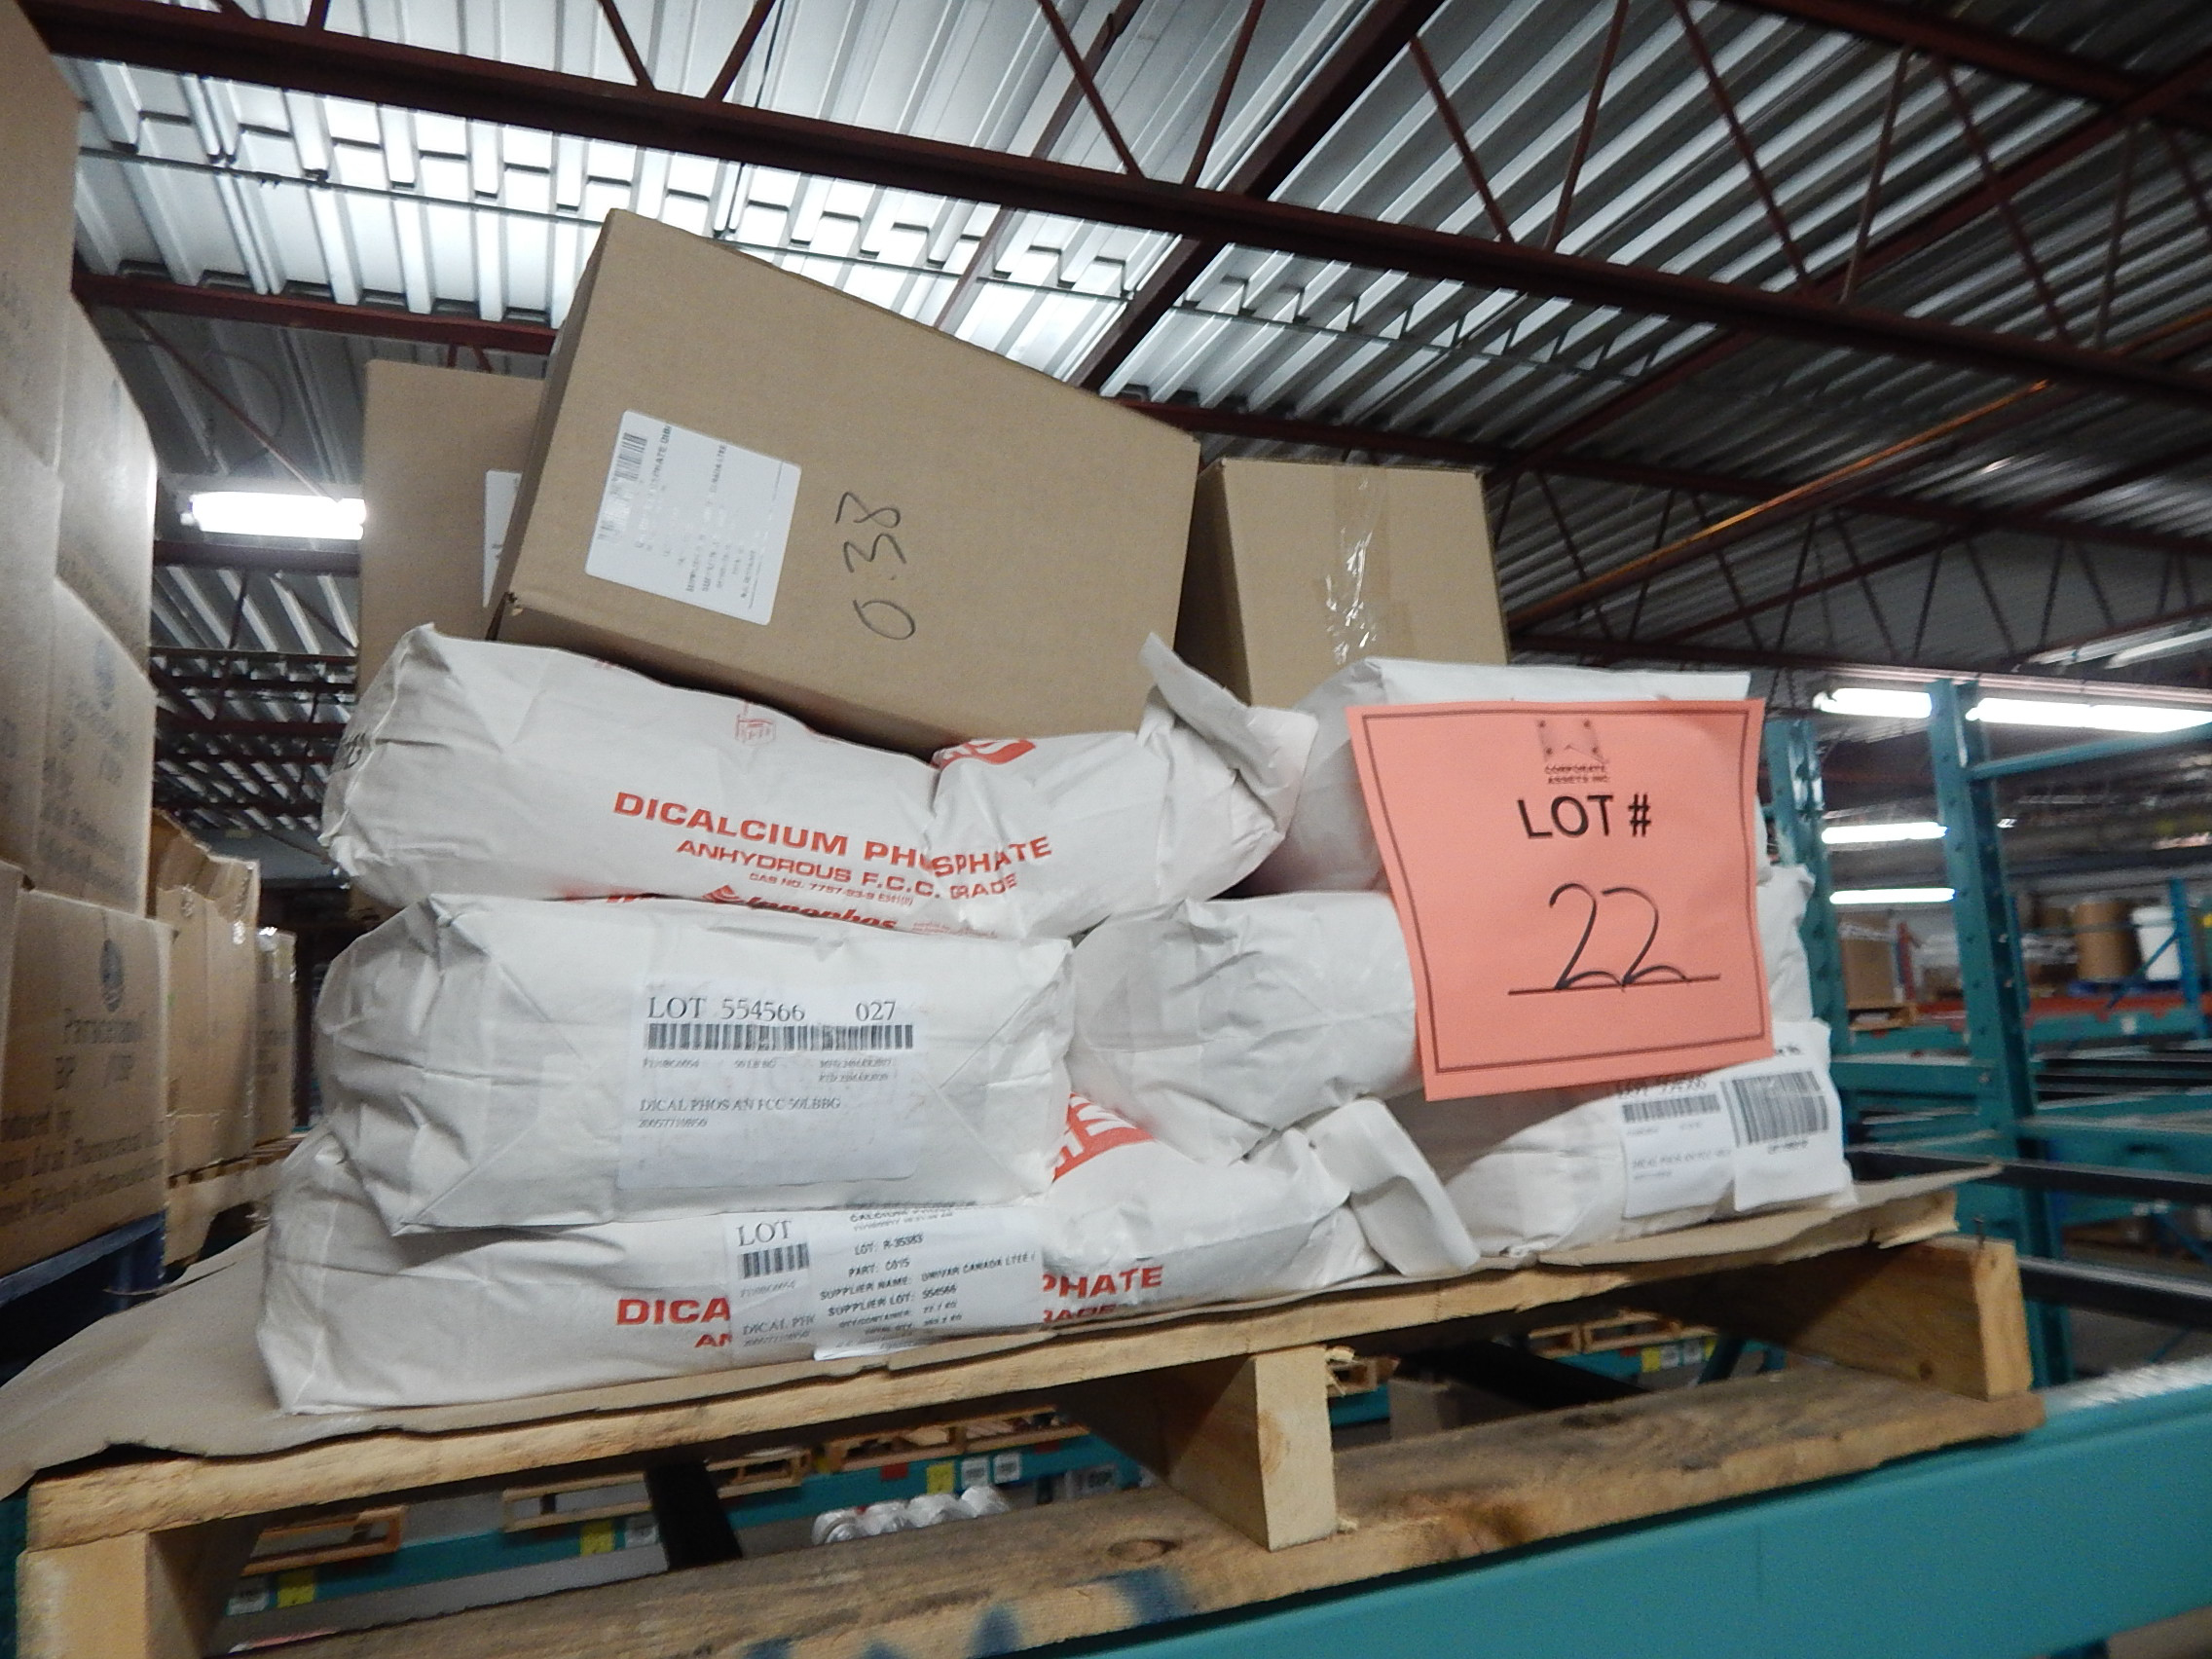 Lot 22 - LOT/ SKID WITH CONTENTS CONSISTING OF BAGS OF CALCIUM PHOSPHATE